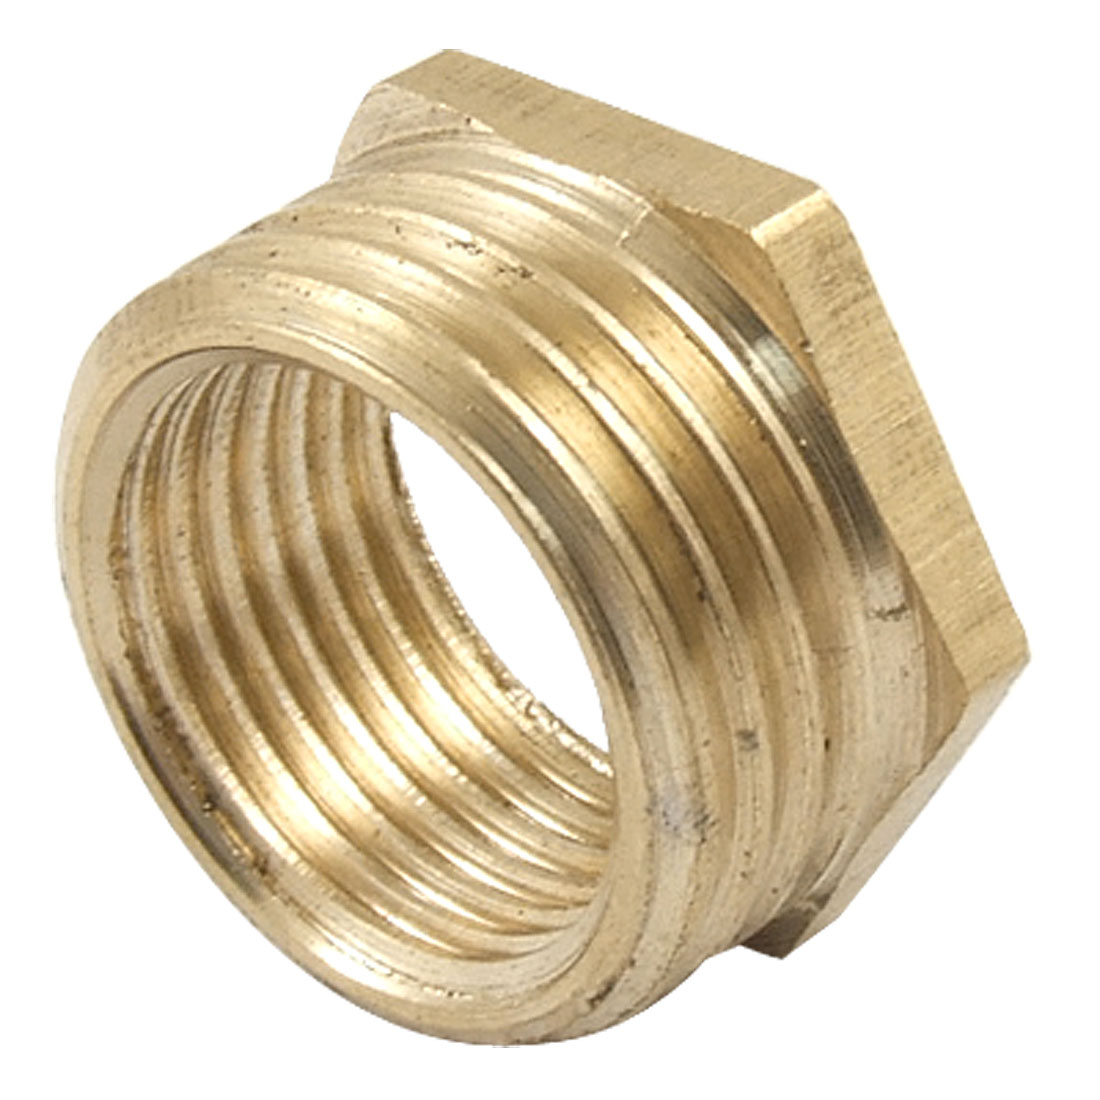 Brass 20 x 15mm Thread Hex Bushing Pipe Reducer Connector